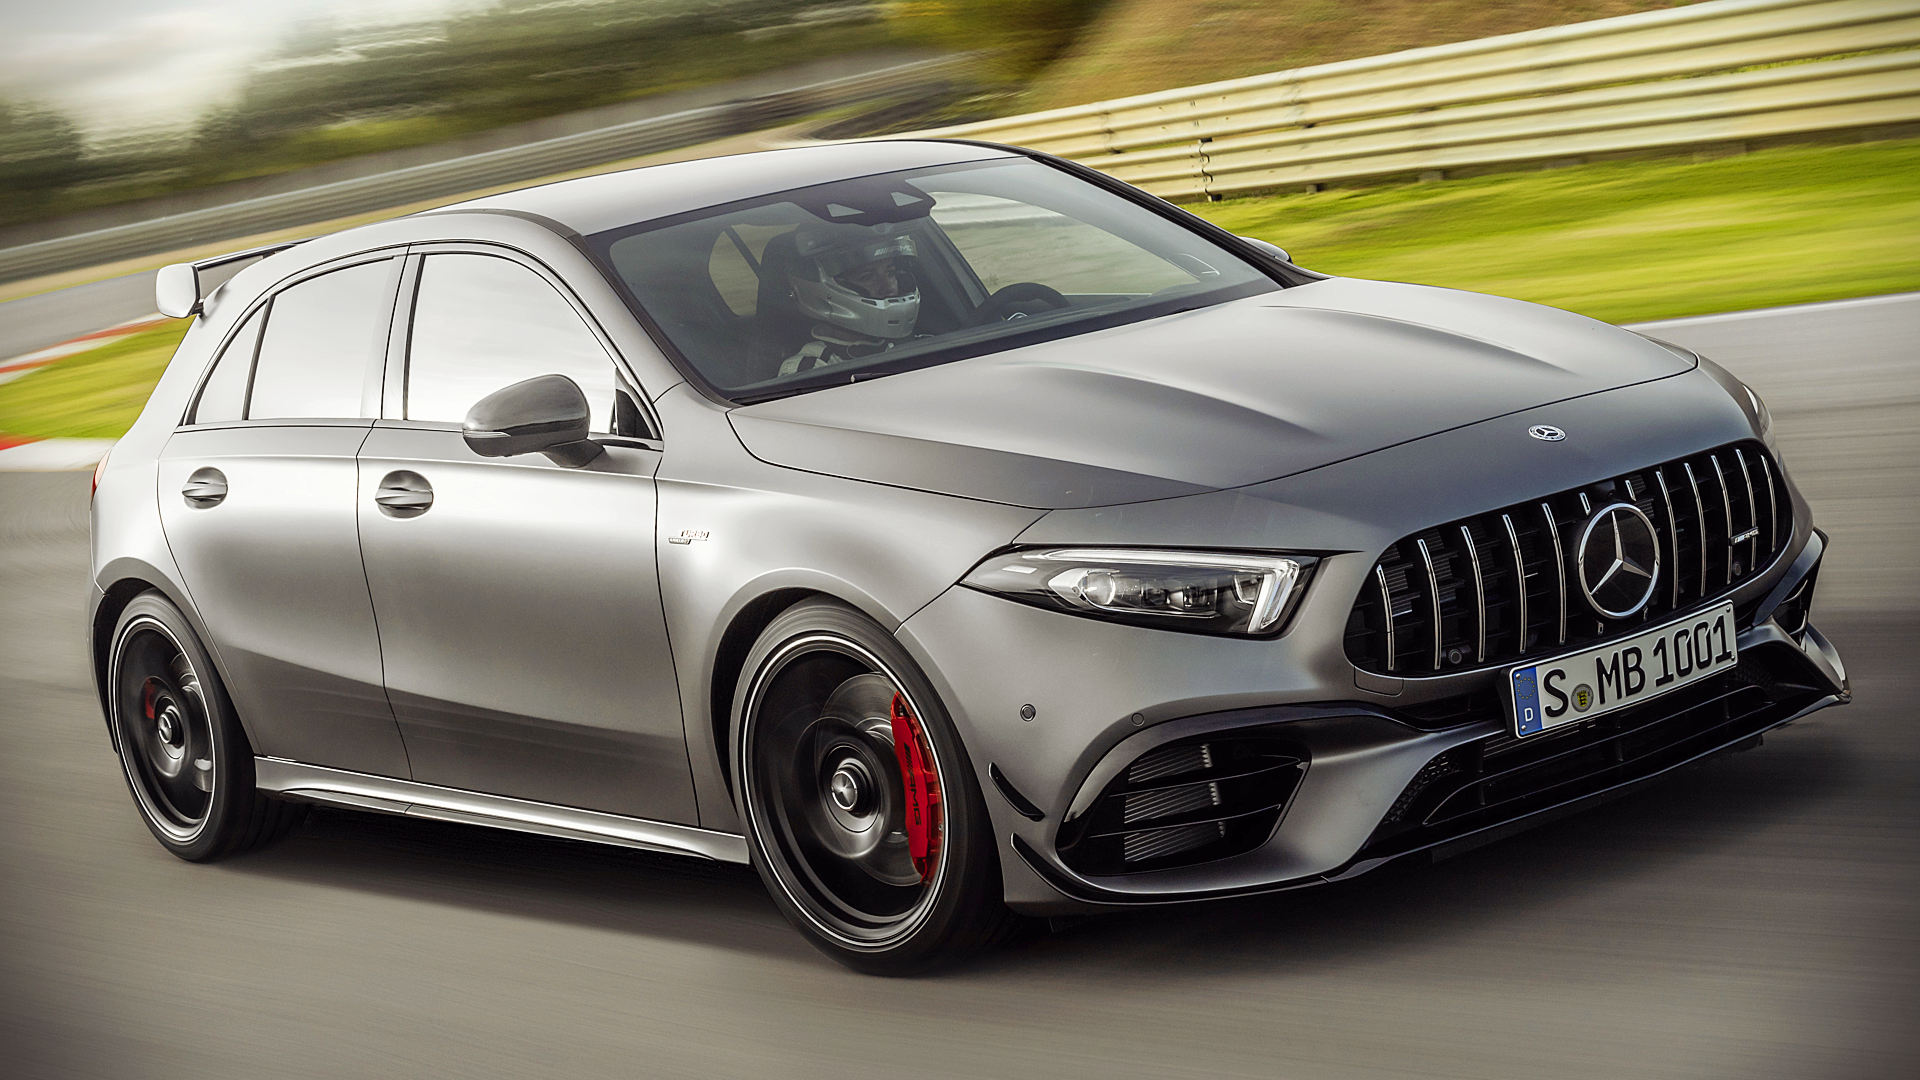 Mercedes A45 AMG 2020 Images USA